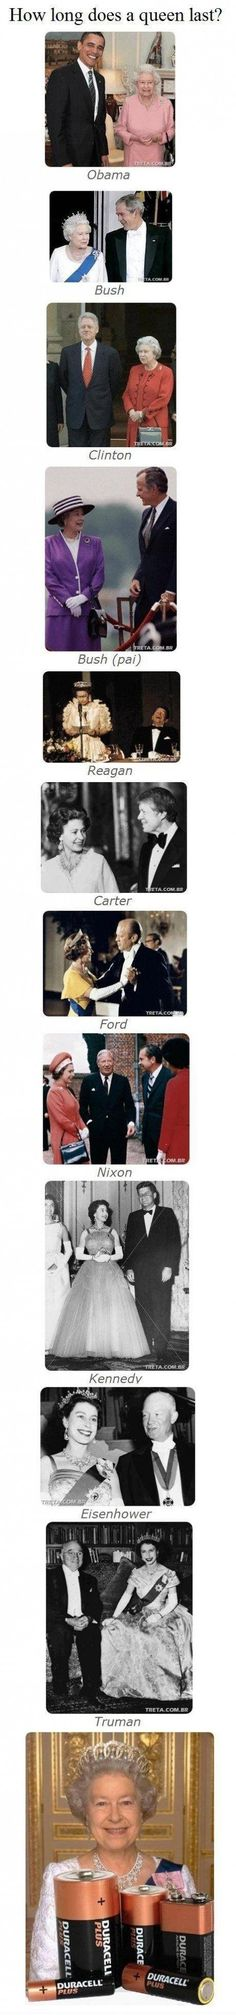 Hate the last picture with the batteries, but it is really cool to see the queen with all of those presidents.